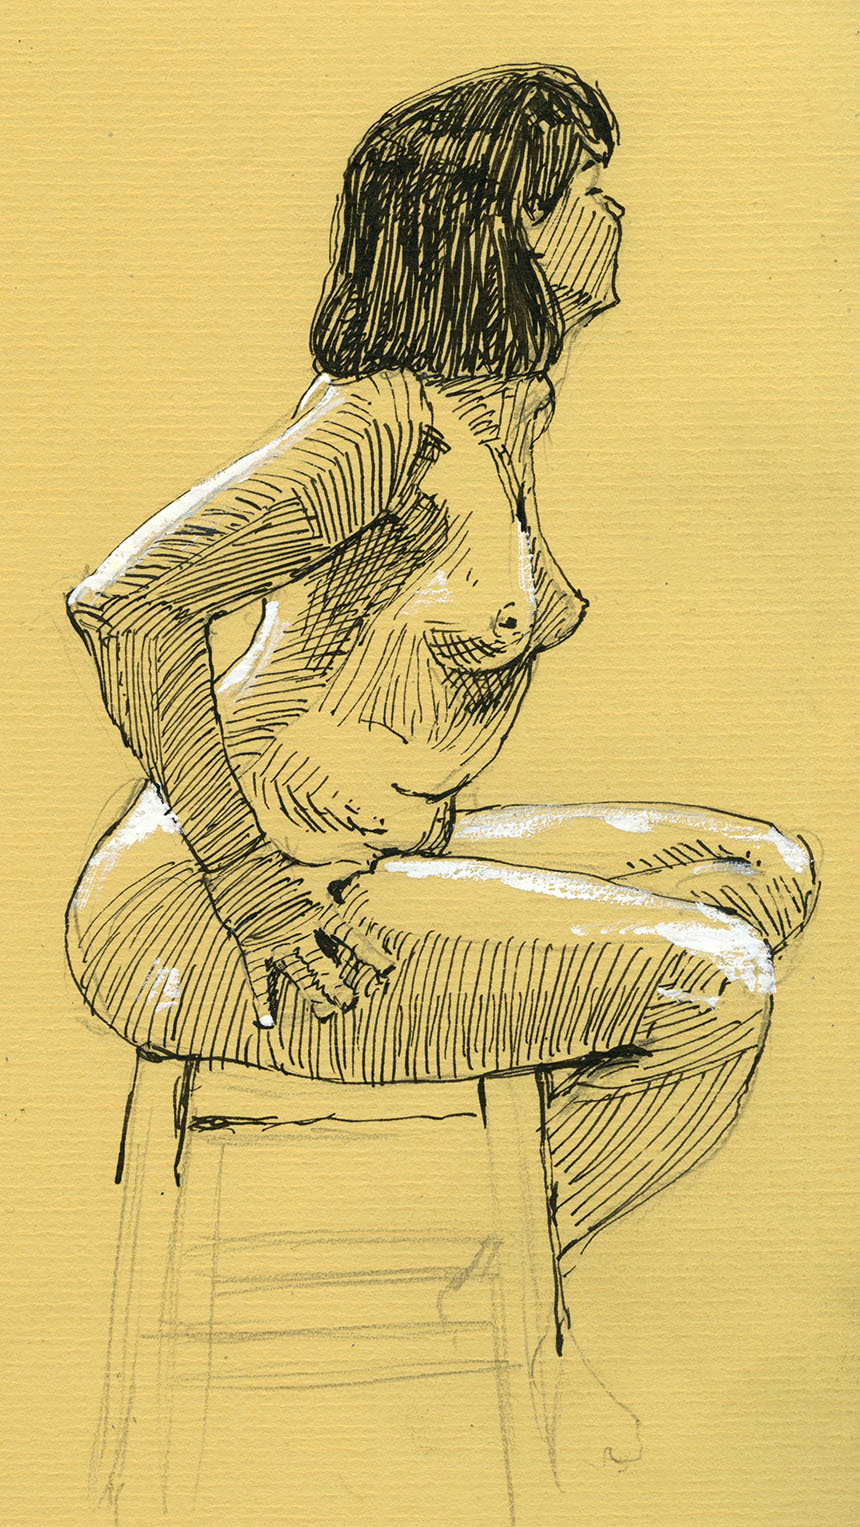 pen and ink drawing, life drawing, figure